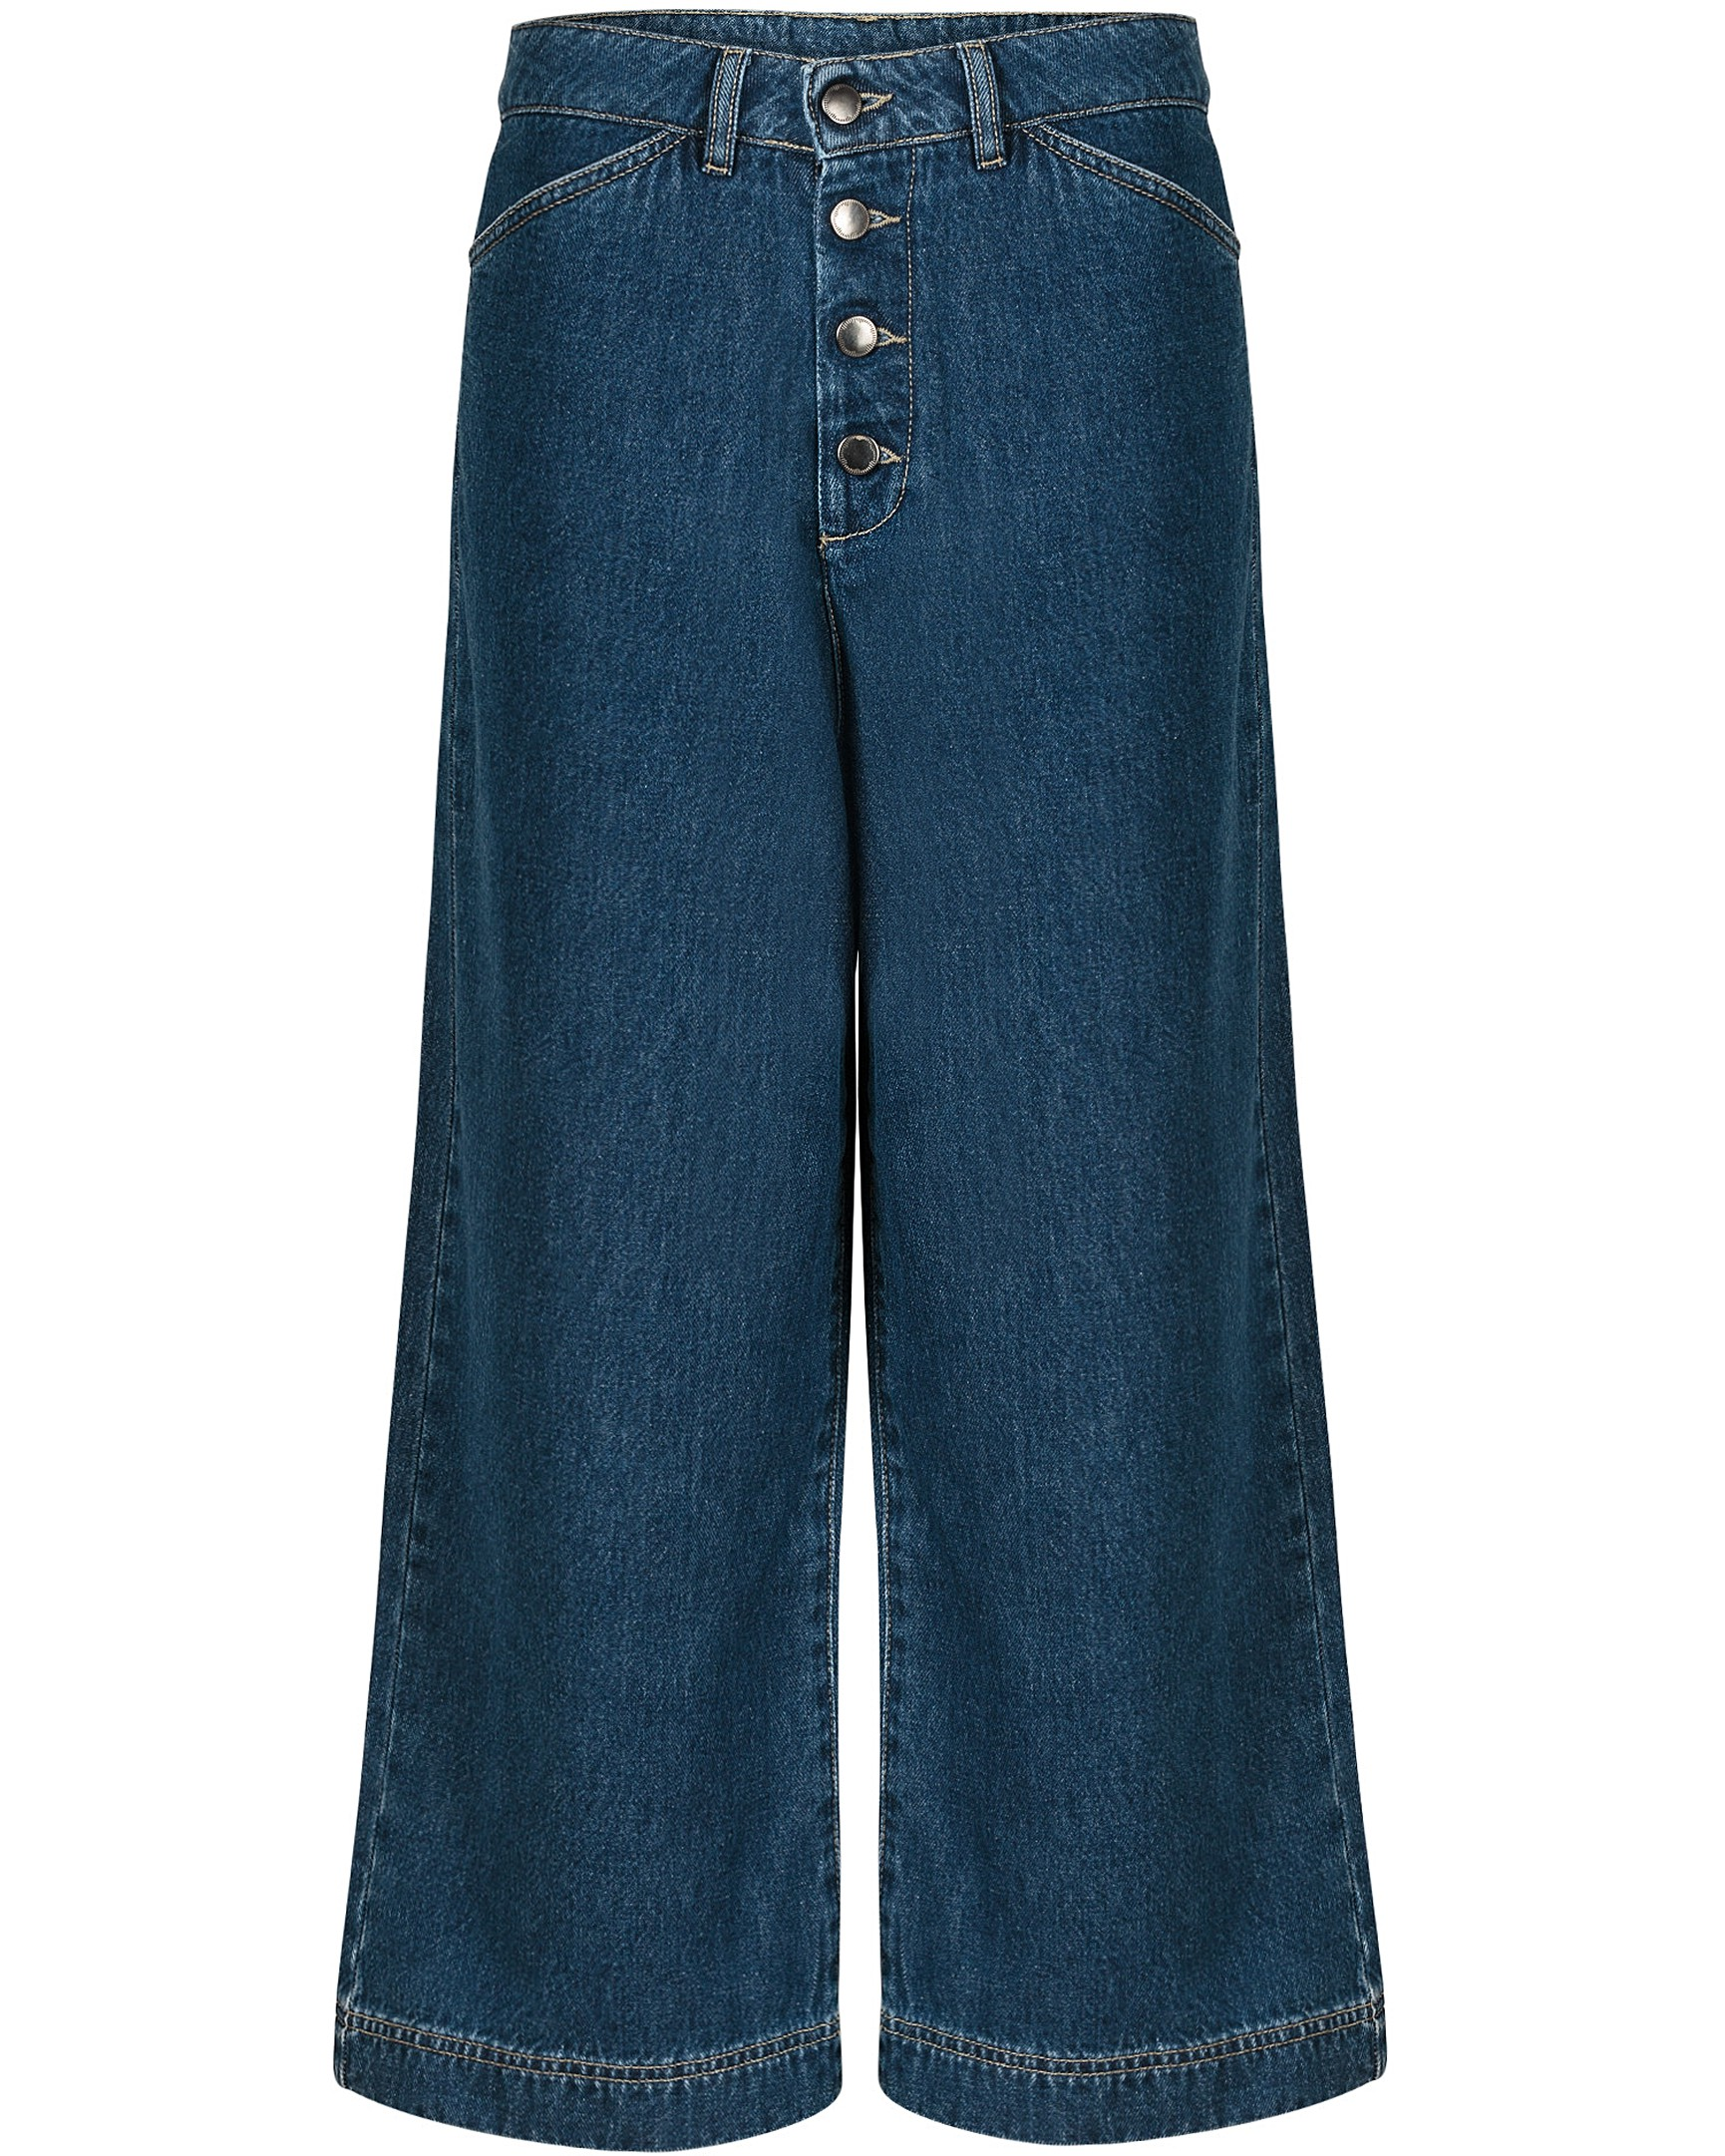 216df37810 Trousers, Jeans & Shorts | Oliver Bonas